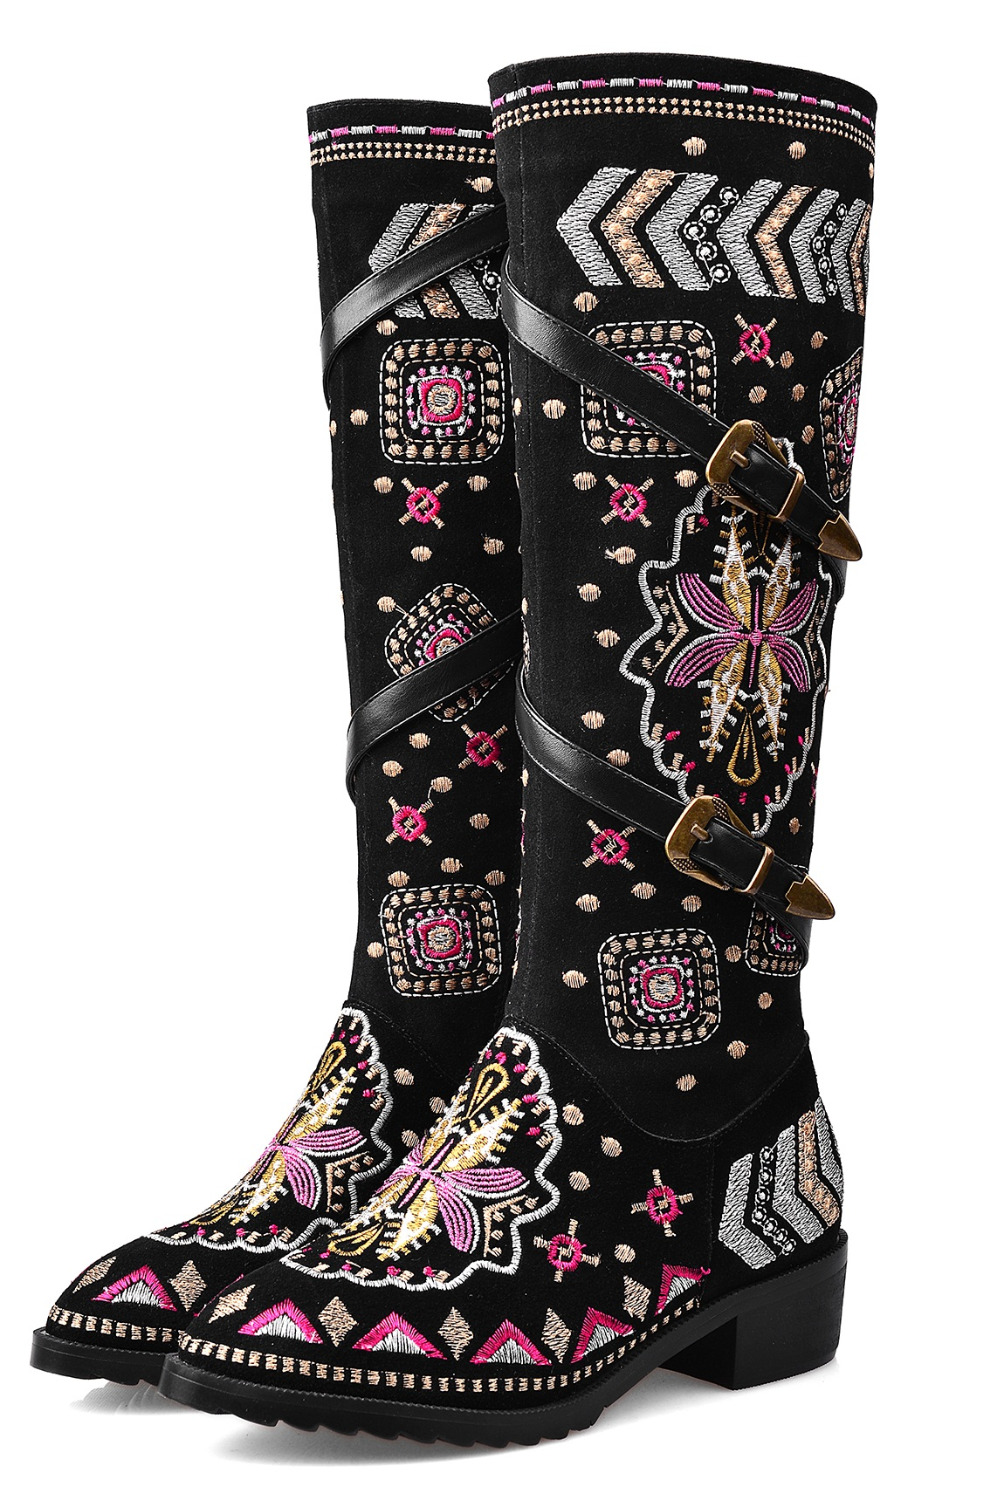 Retro Fashion National Style Embroidery Side Zippers Thick Heels Knee High Boots Cowhide Suede Belt Buckle Women Pumps Shoe<br><br>Aliexpress